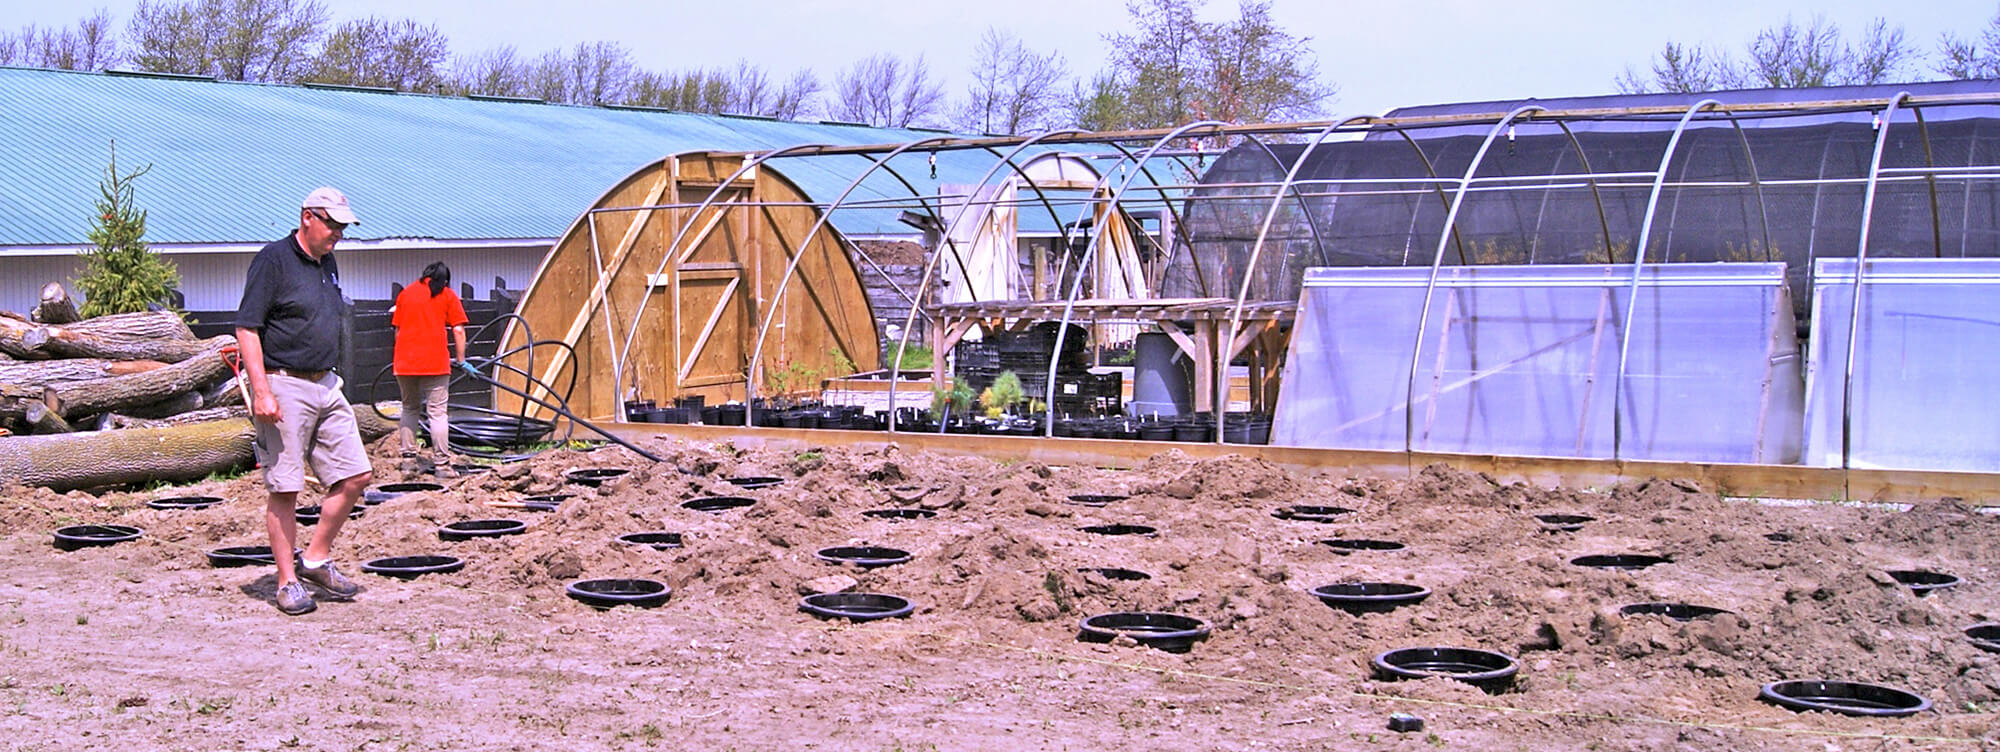 hoop house with pots in the ground beside it